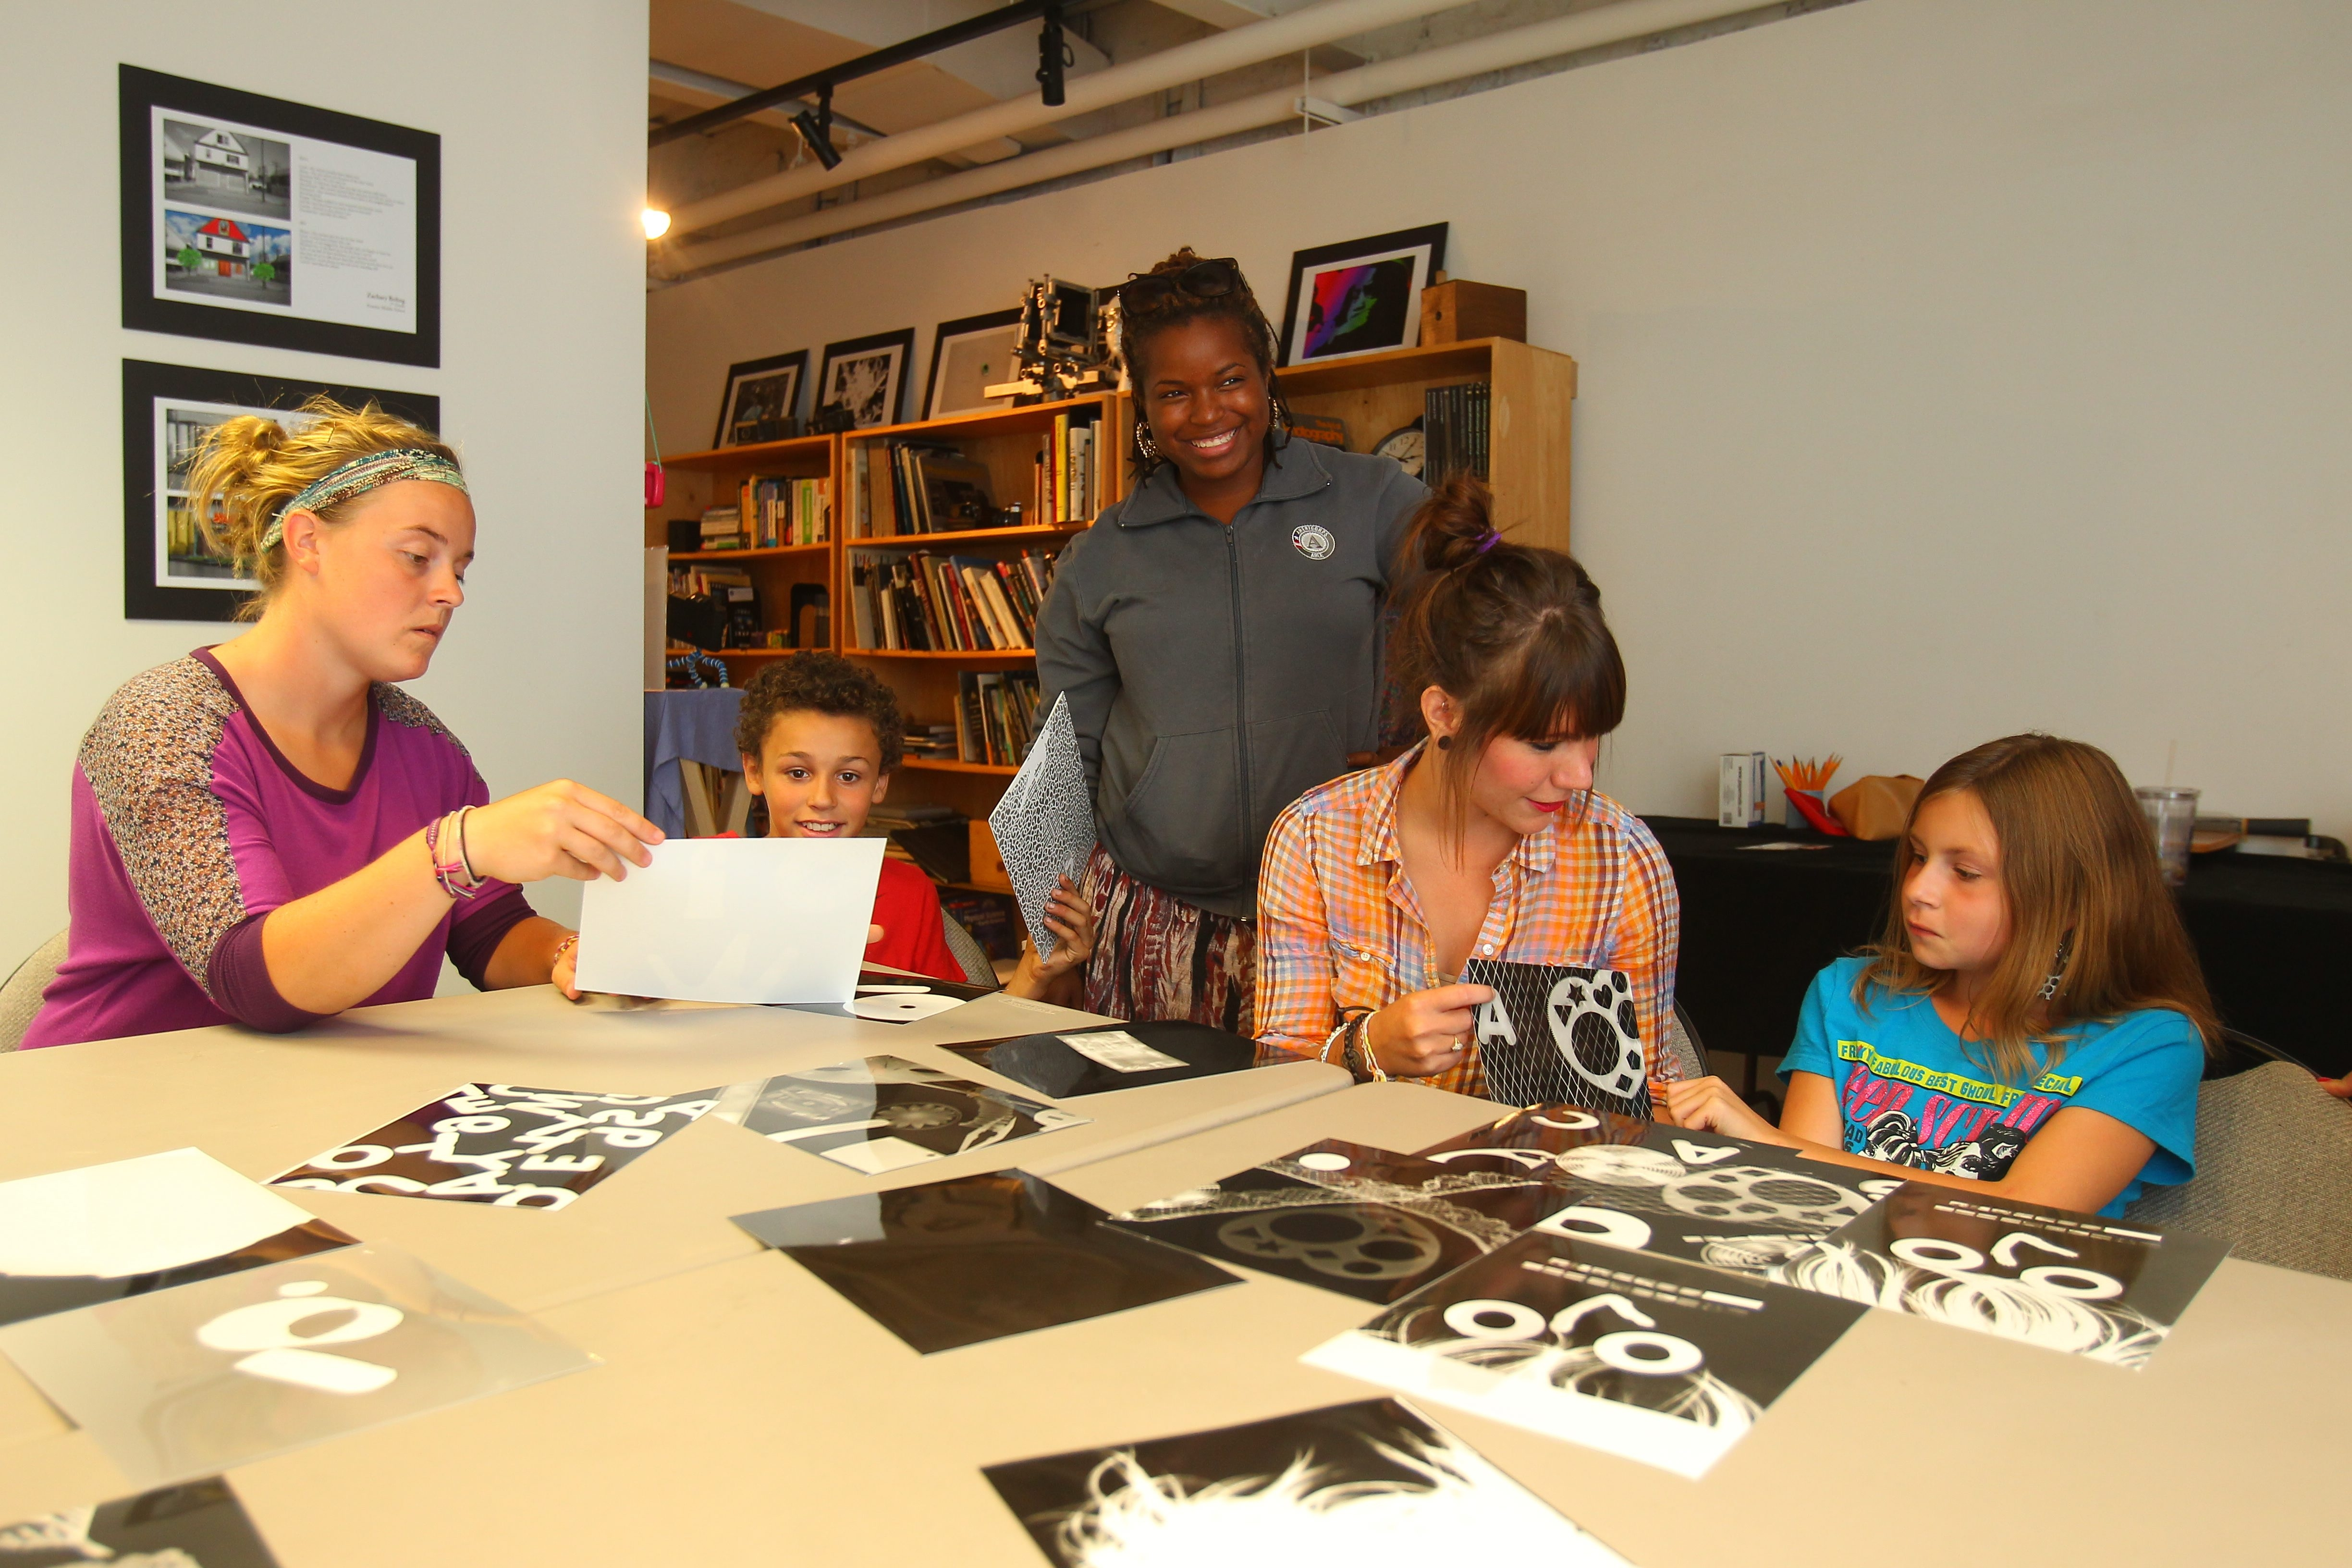 Project SOAR coordinator Jessica Johnson, left, works with Jeremiah Marquez, 11, of Buffalo, while coordinators Rasheena Turman and Karen Brady work with Alyssa Wolfson, 9, of Buffalo, as the students pick out photograms at CEPA Gallery.